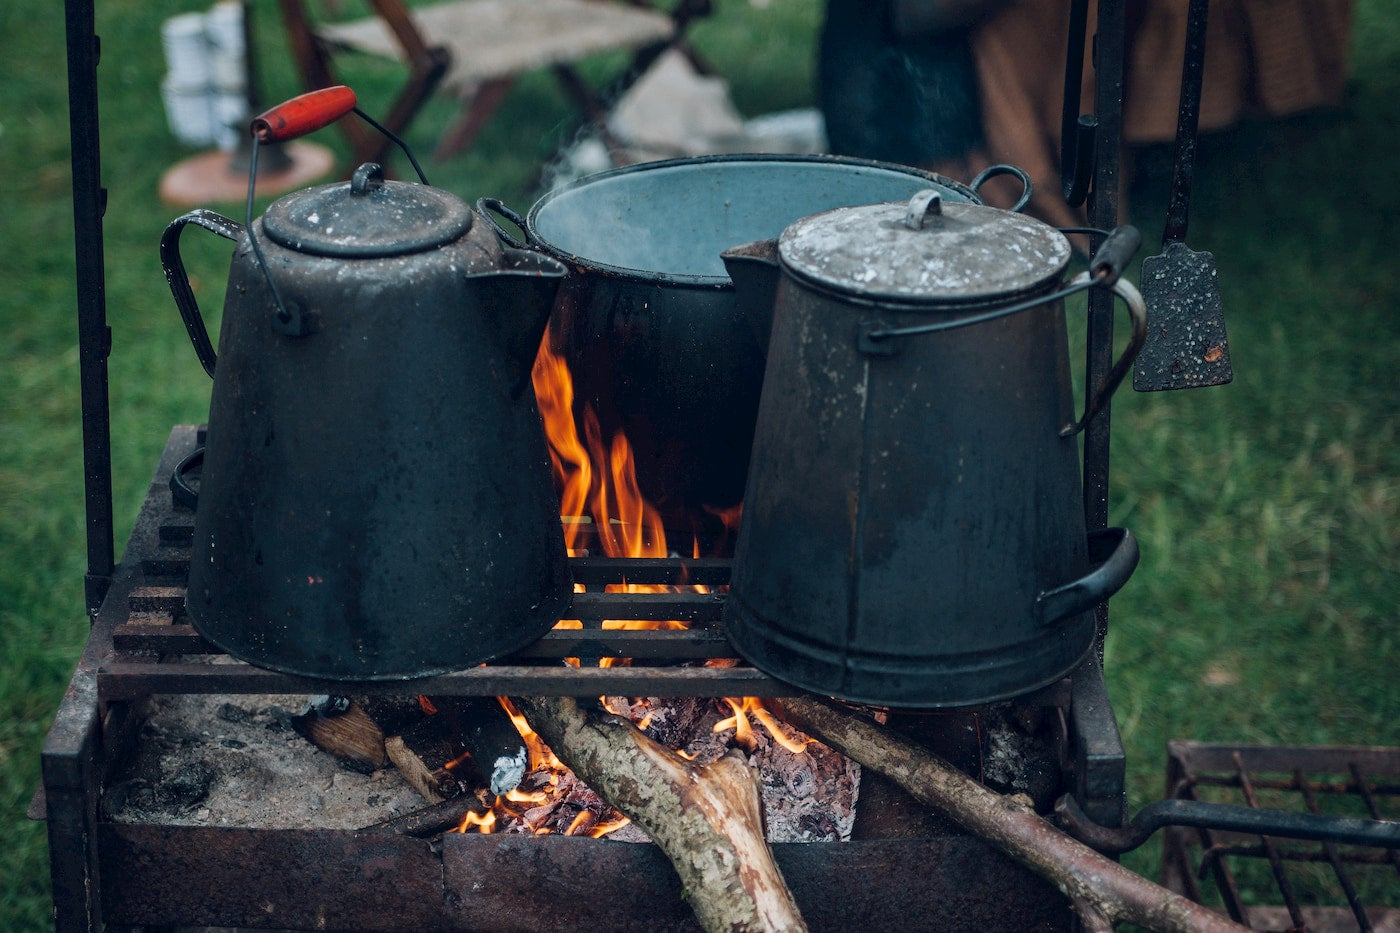 Kettles and pot cooking over a fire.